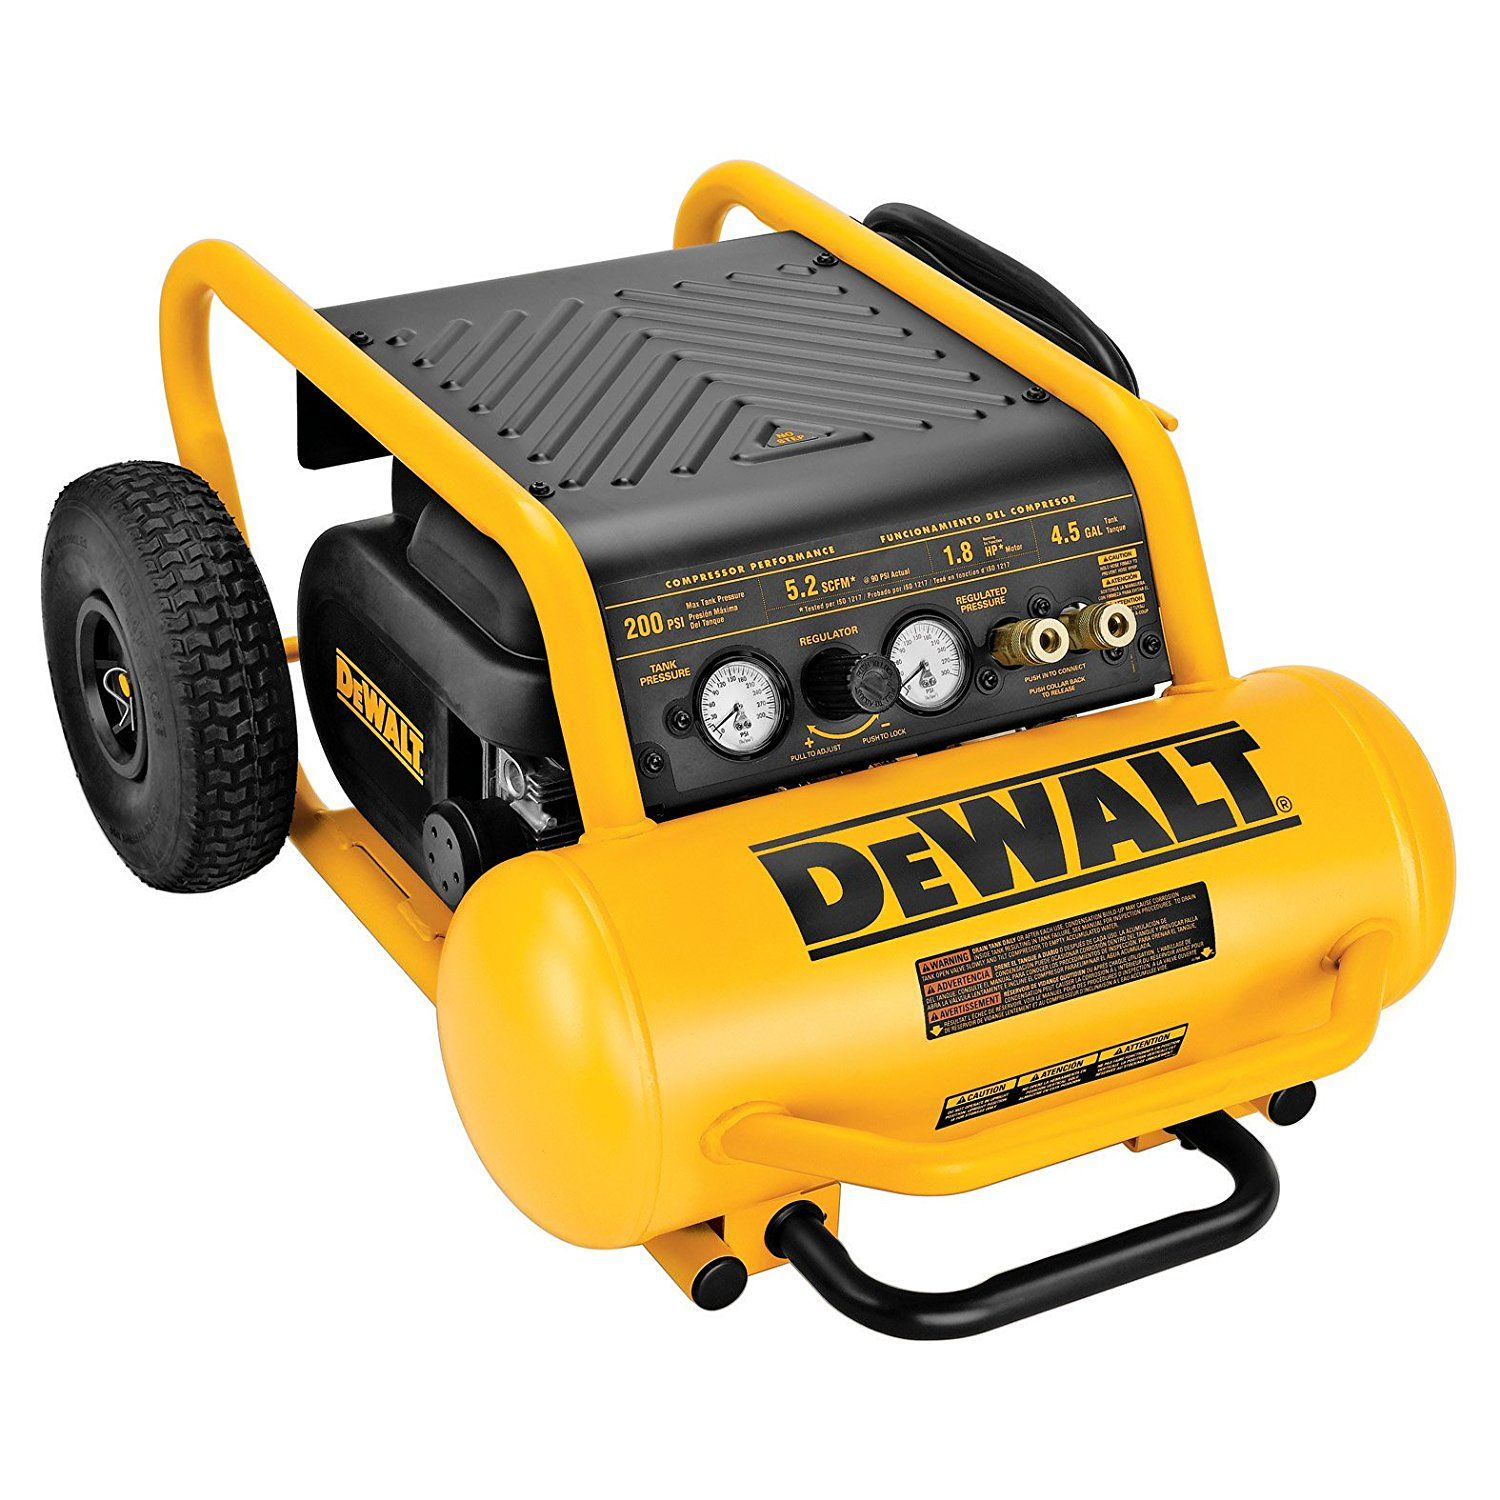 Best Portable Air Compressor 2017 Reviews & Ratings